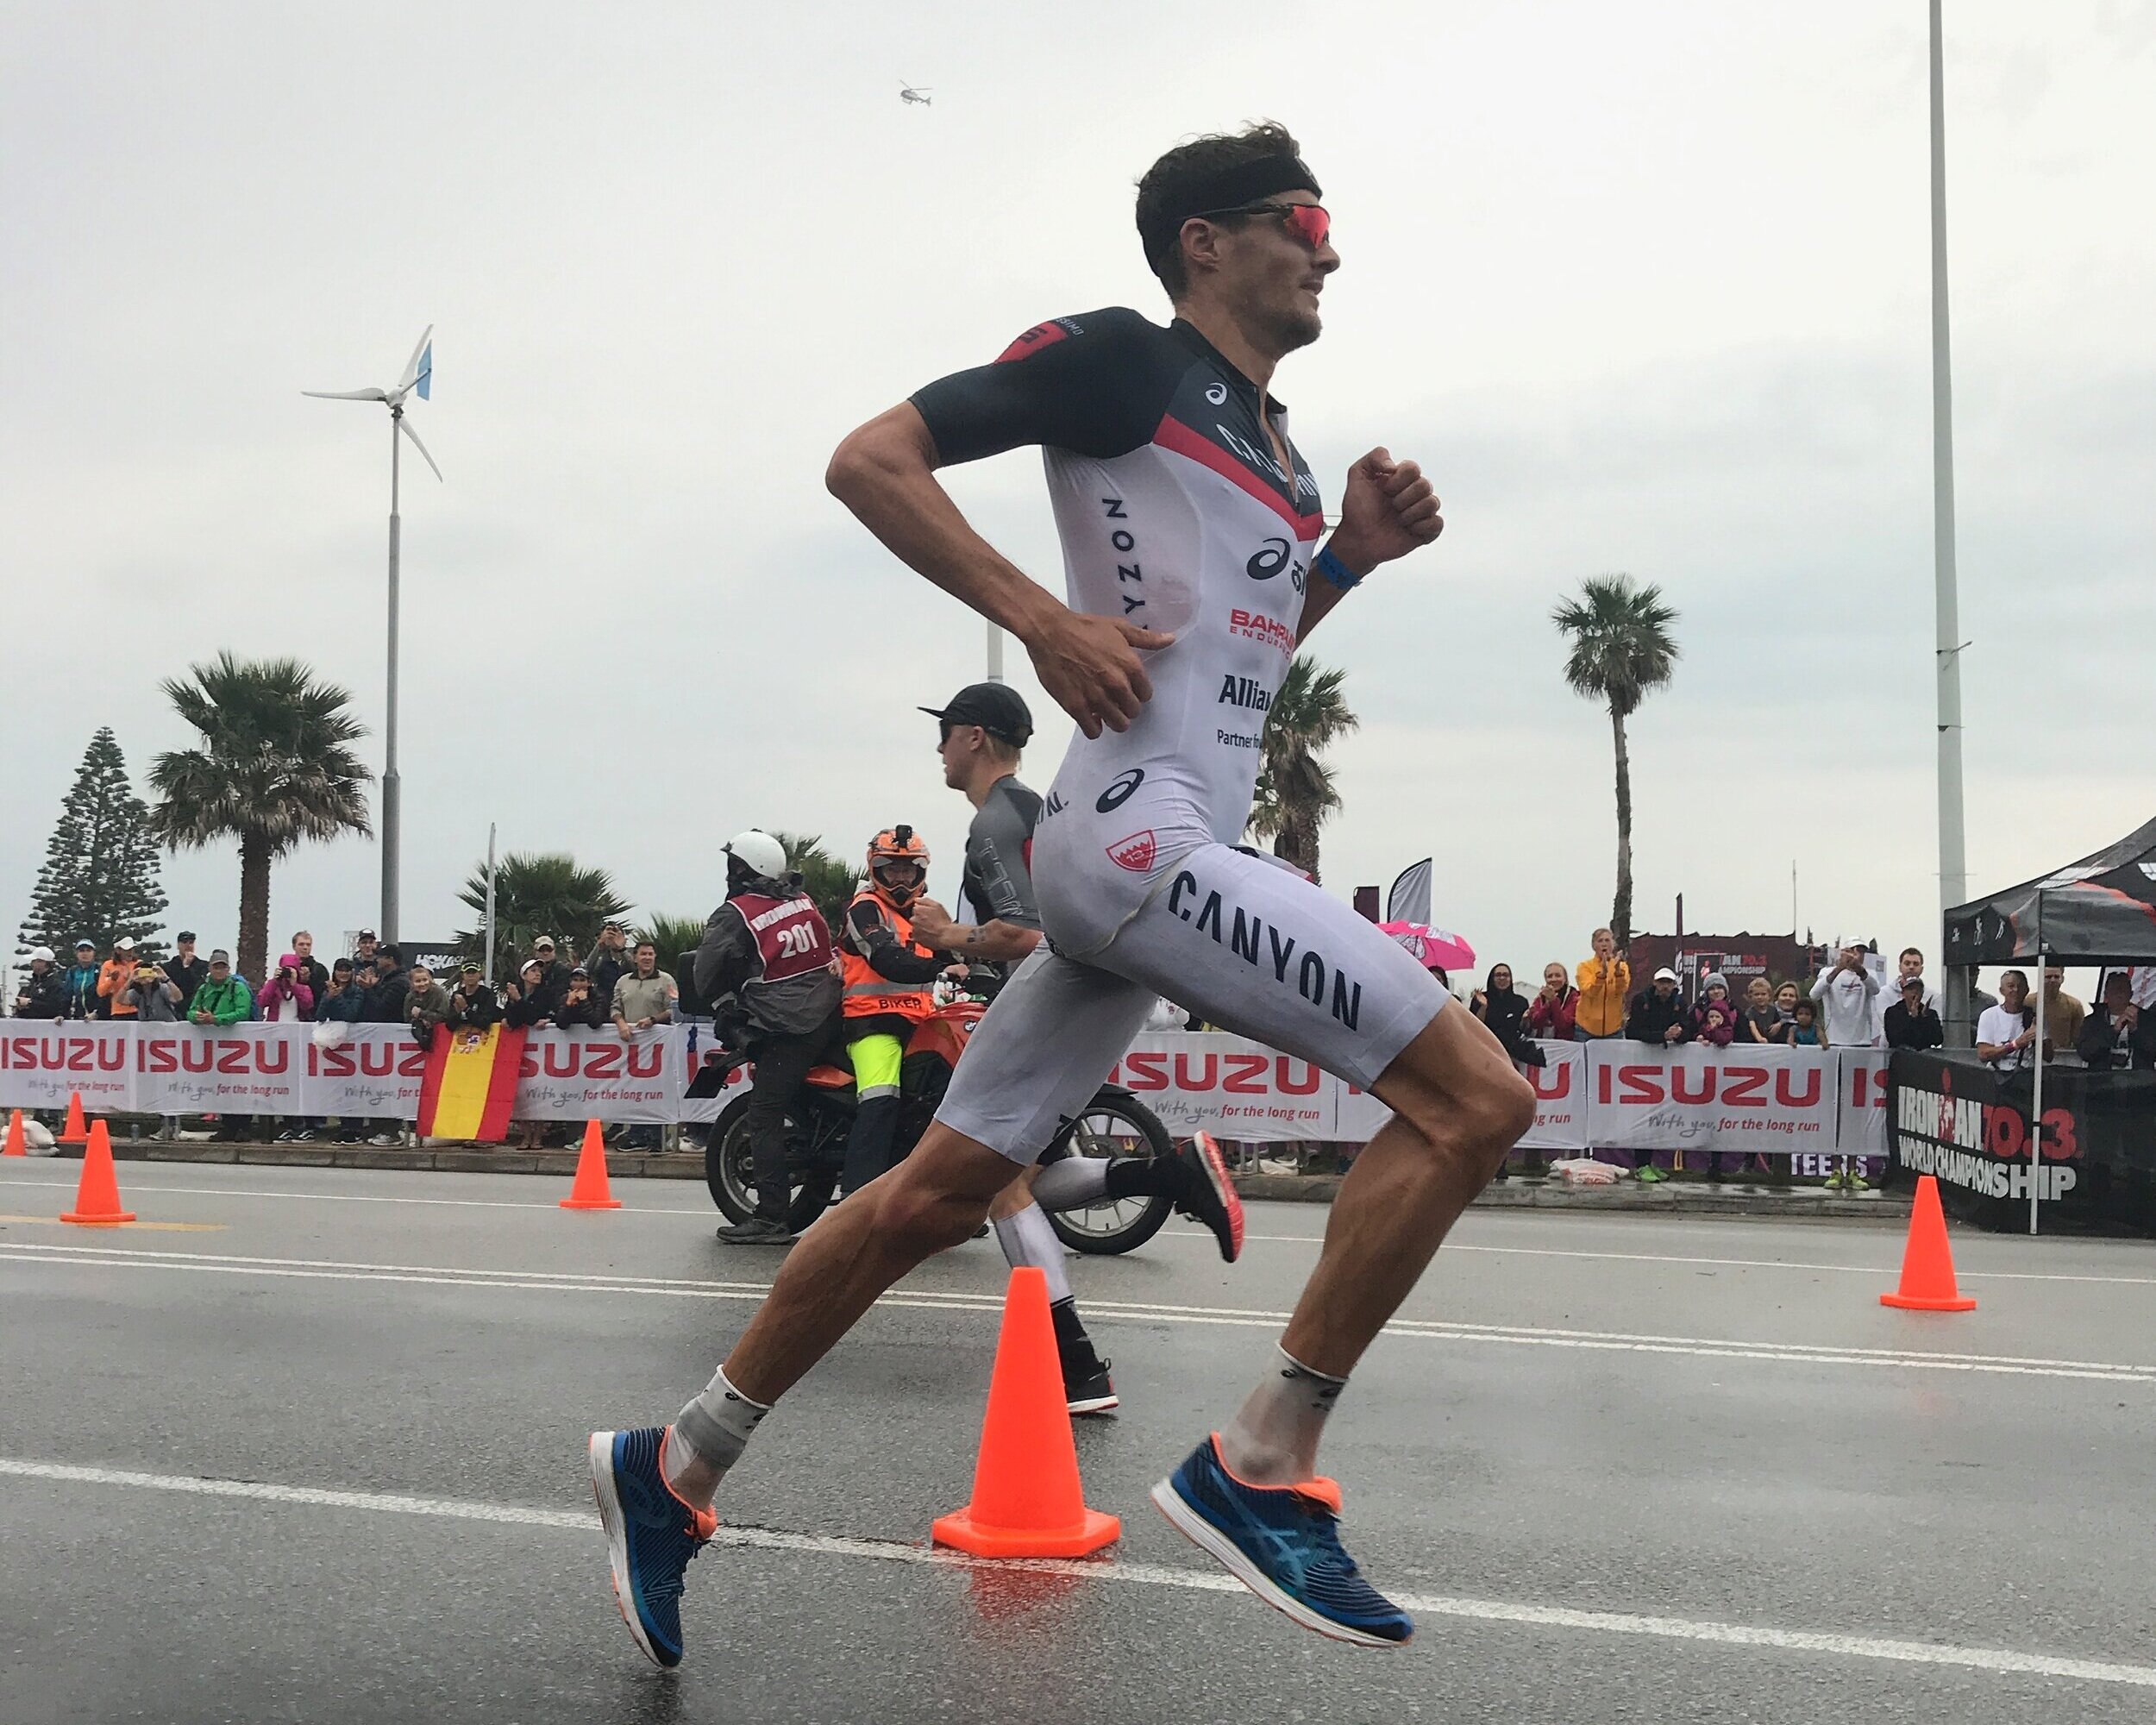 Jan Frodeno in the IRONMAN 70.3 Men's World Championship in Port Elizabeth, South Africa 2018